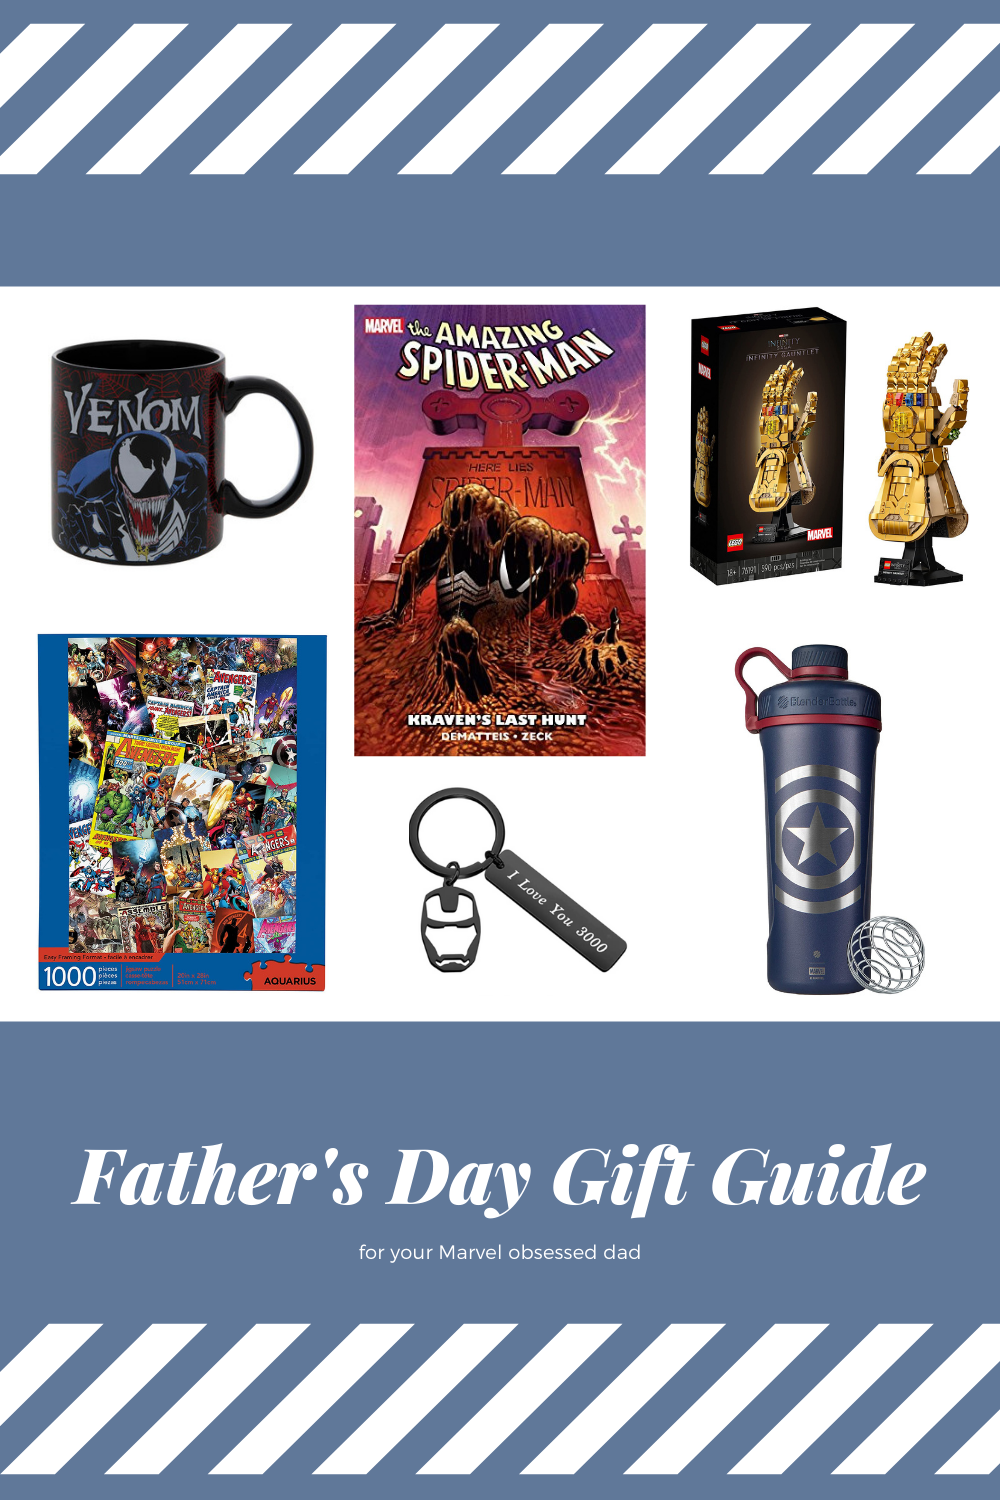 16 Gift Ideas for a Marvel-Obsessed Dad